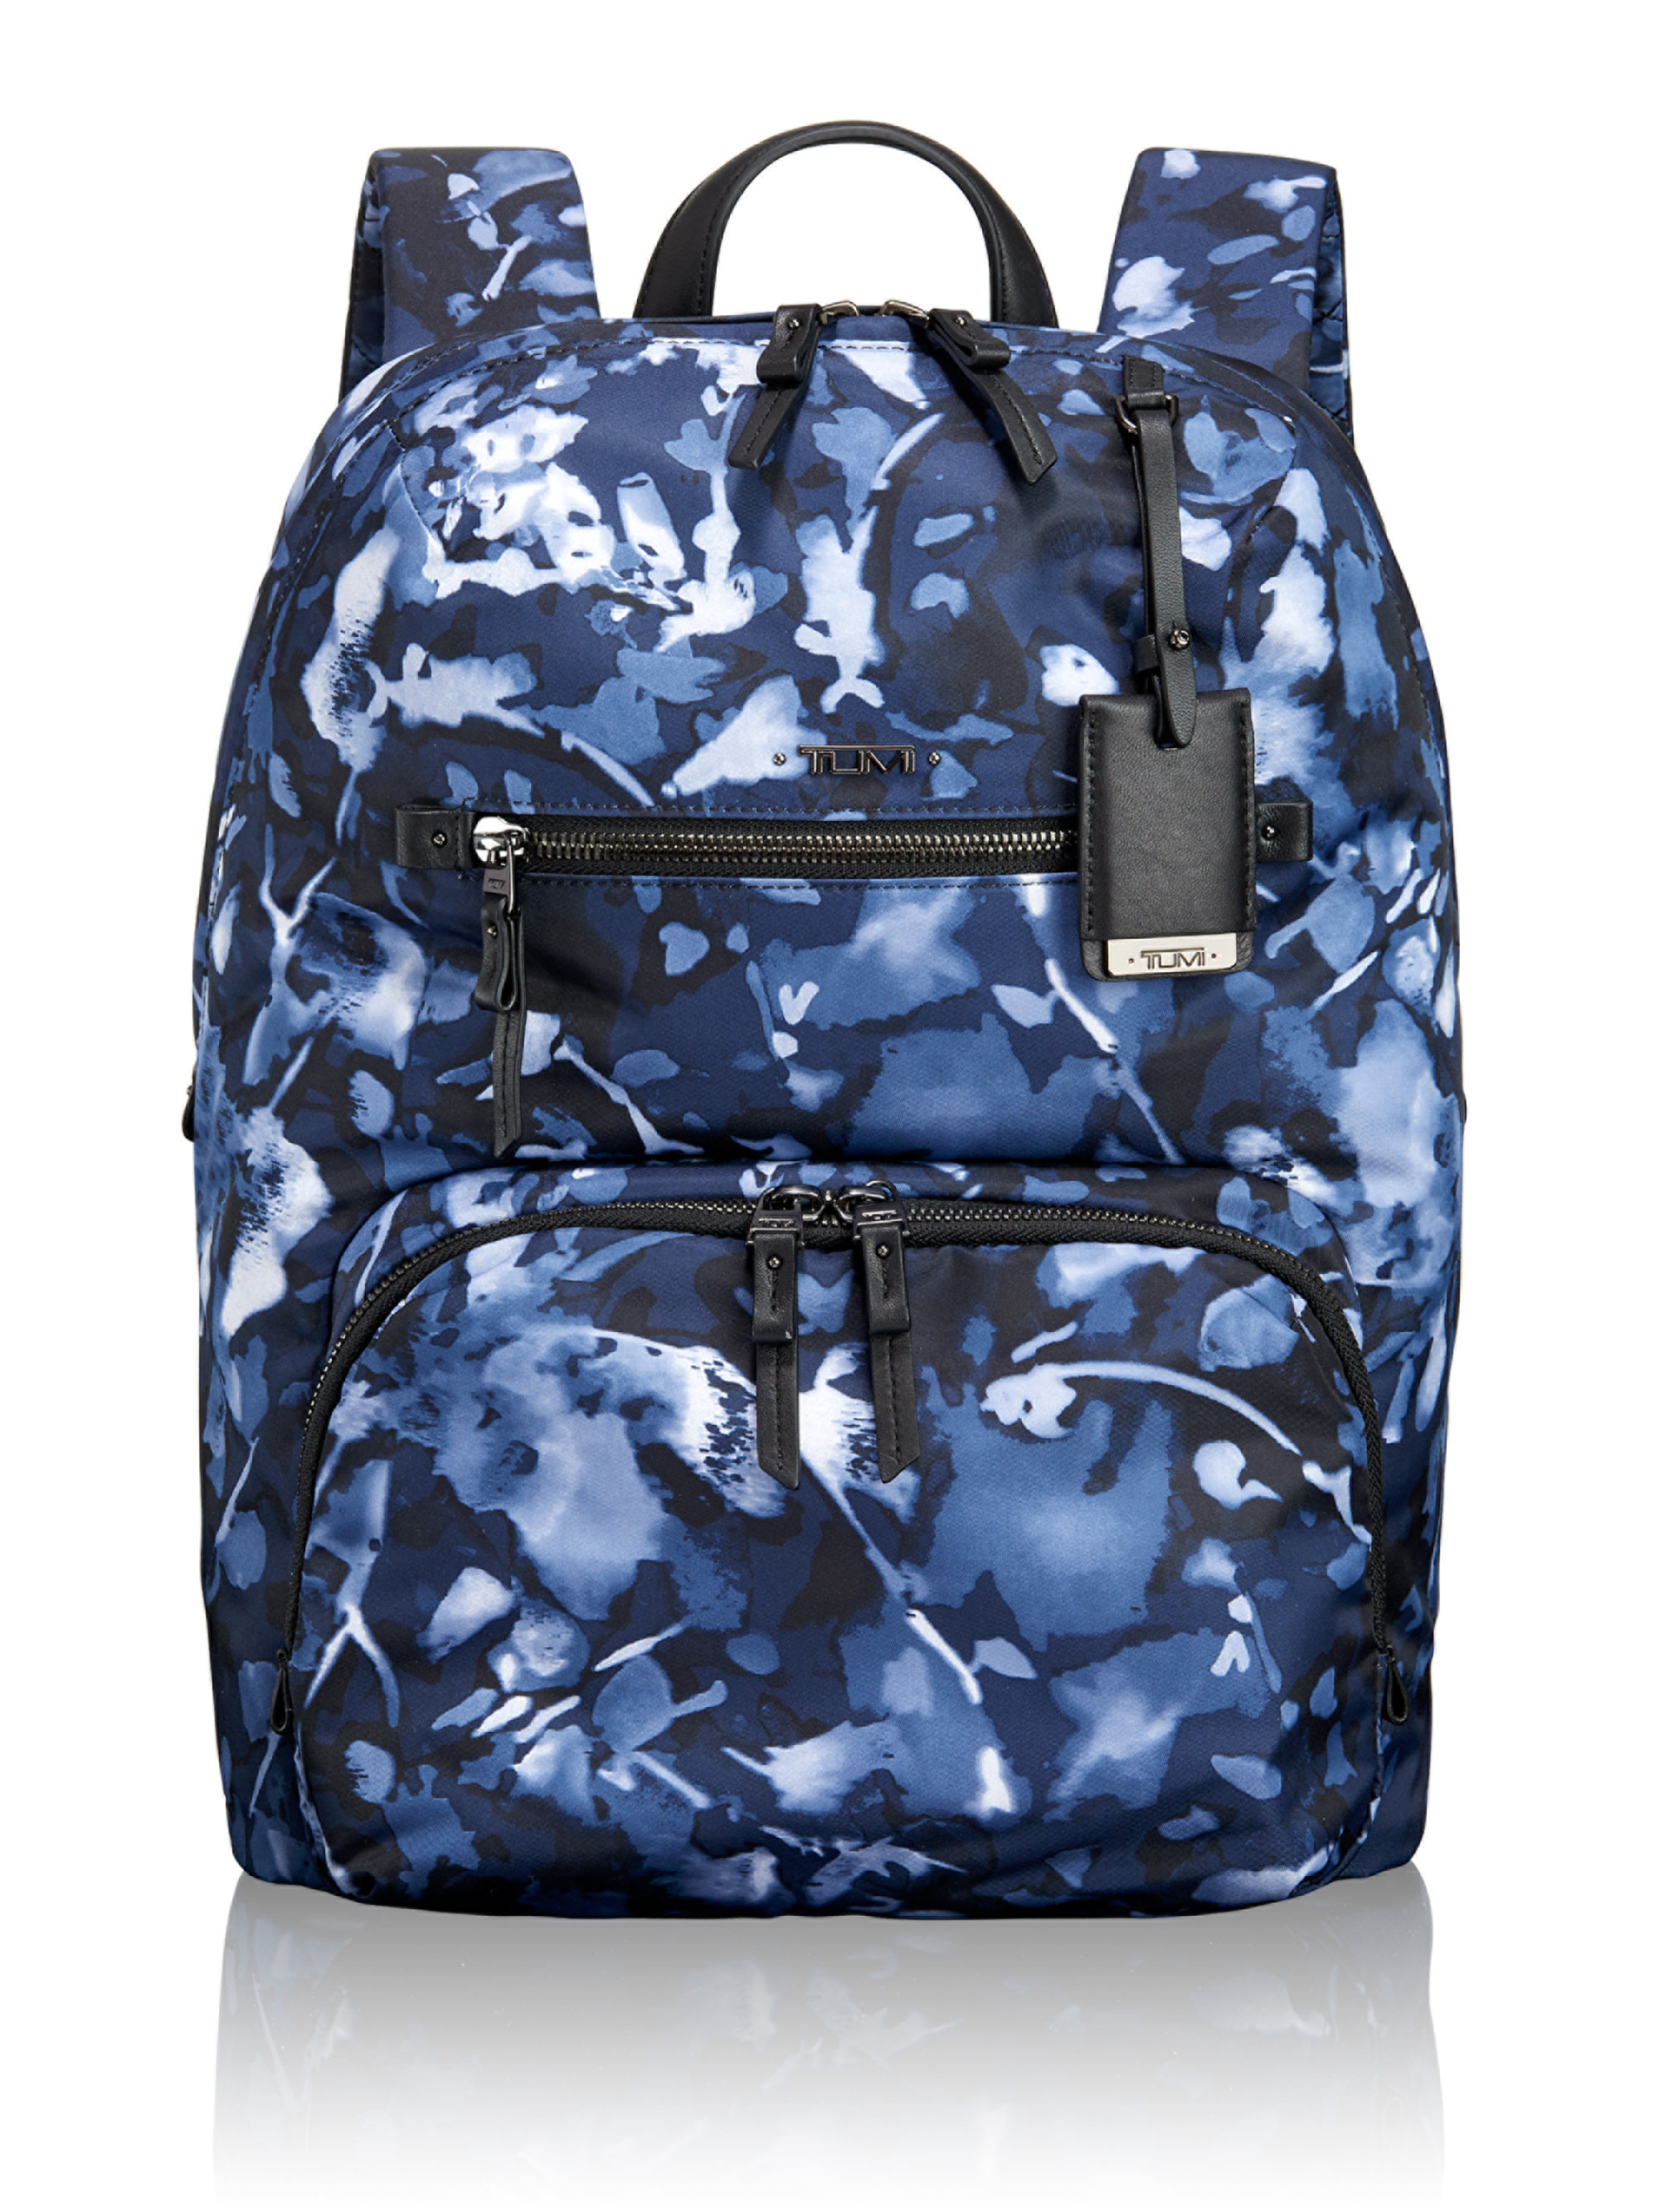 Tumi Nadia Convertible Backpack Sling In Blue Save 11